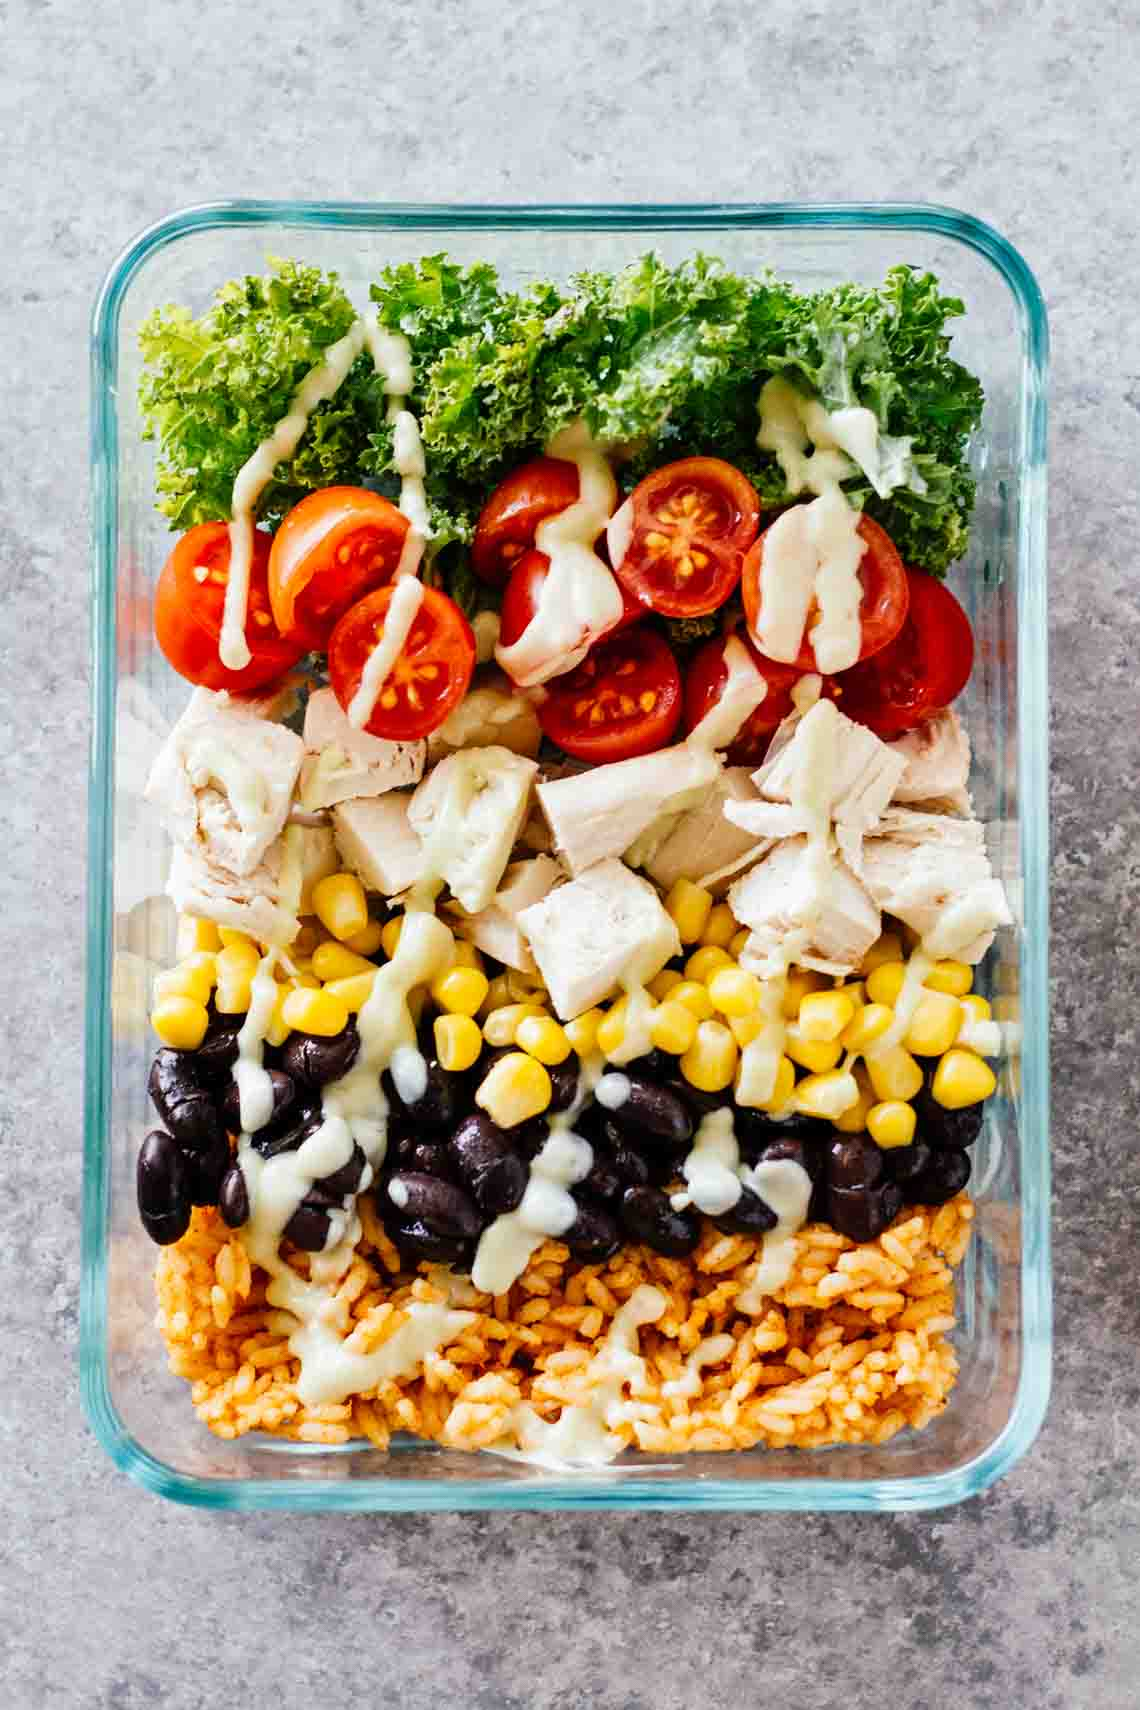 5 Easy Ways to Meal Prep for the Week Plus Healthy Recipes to Try | 31Daily.com